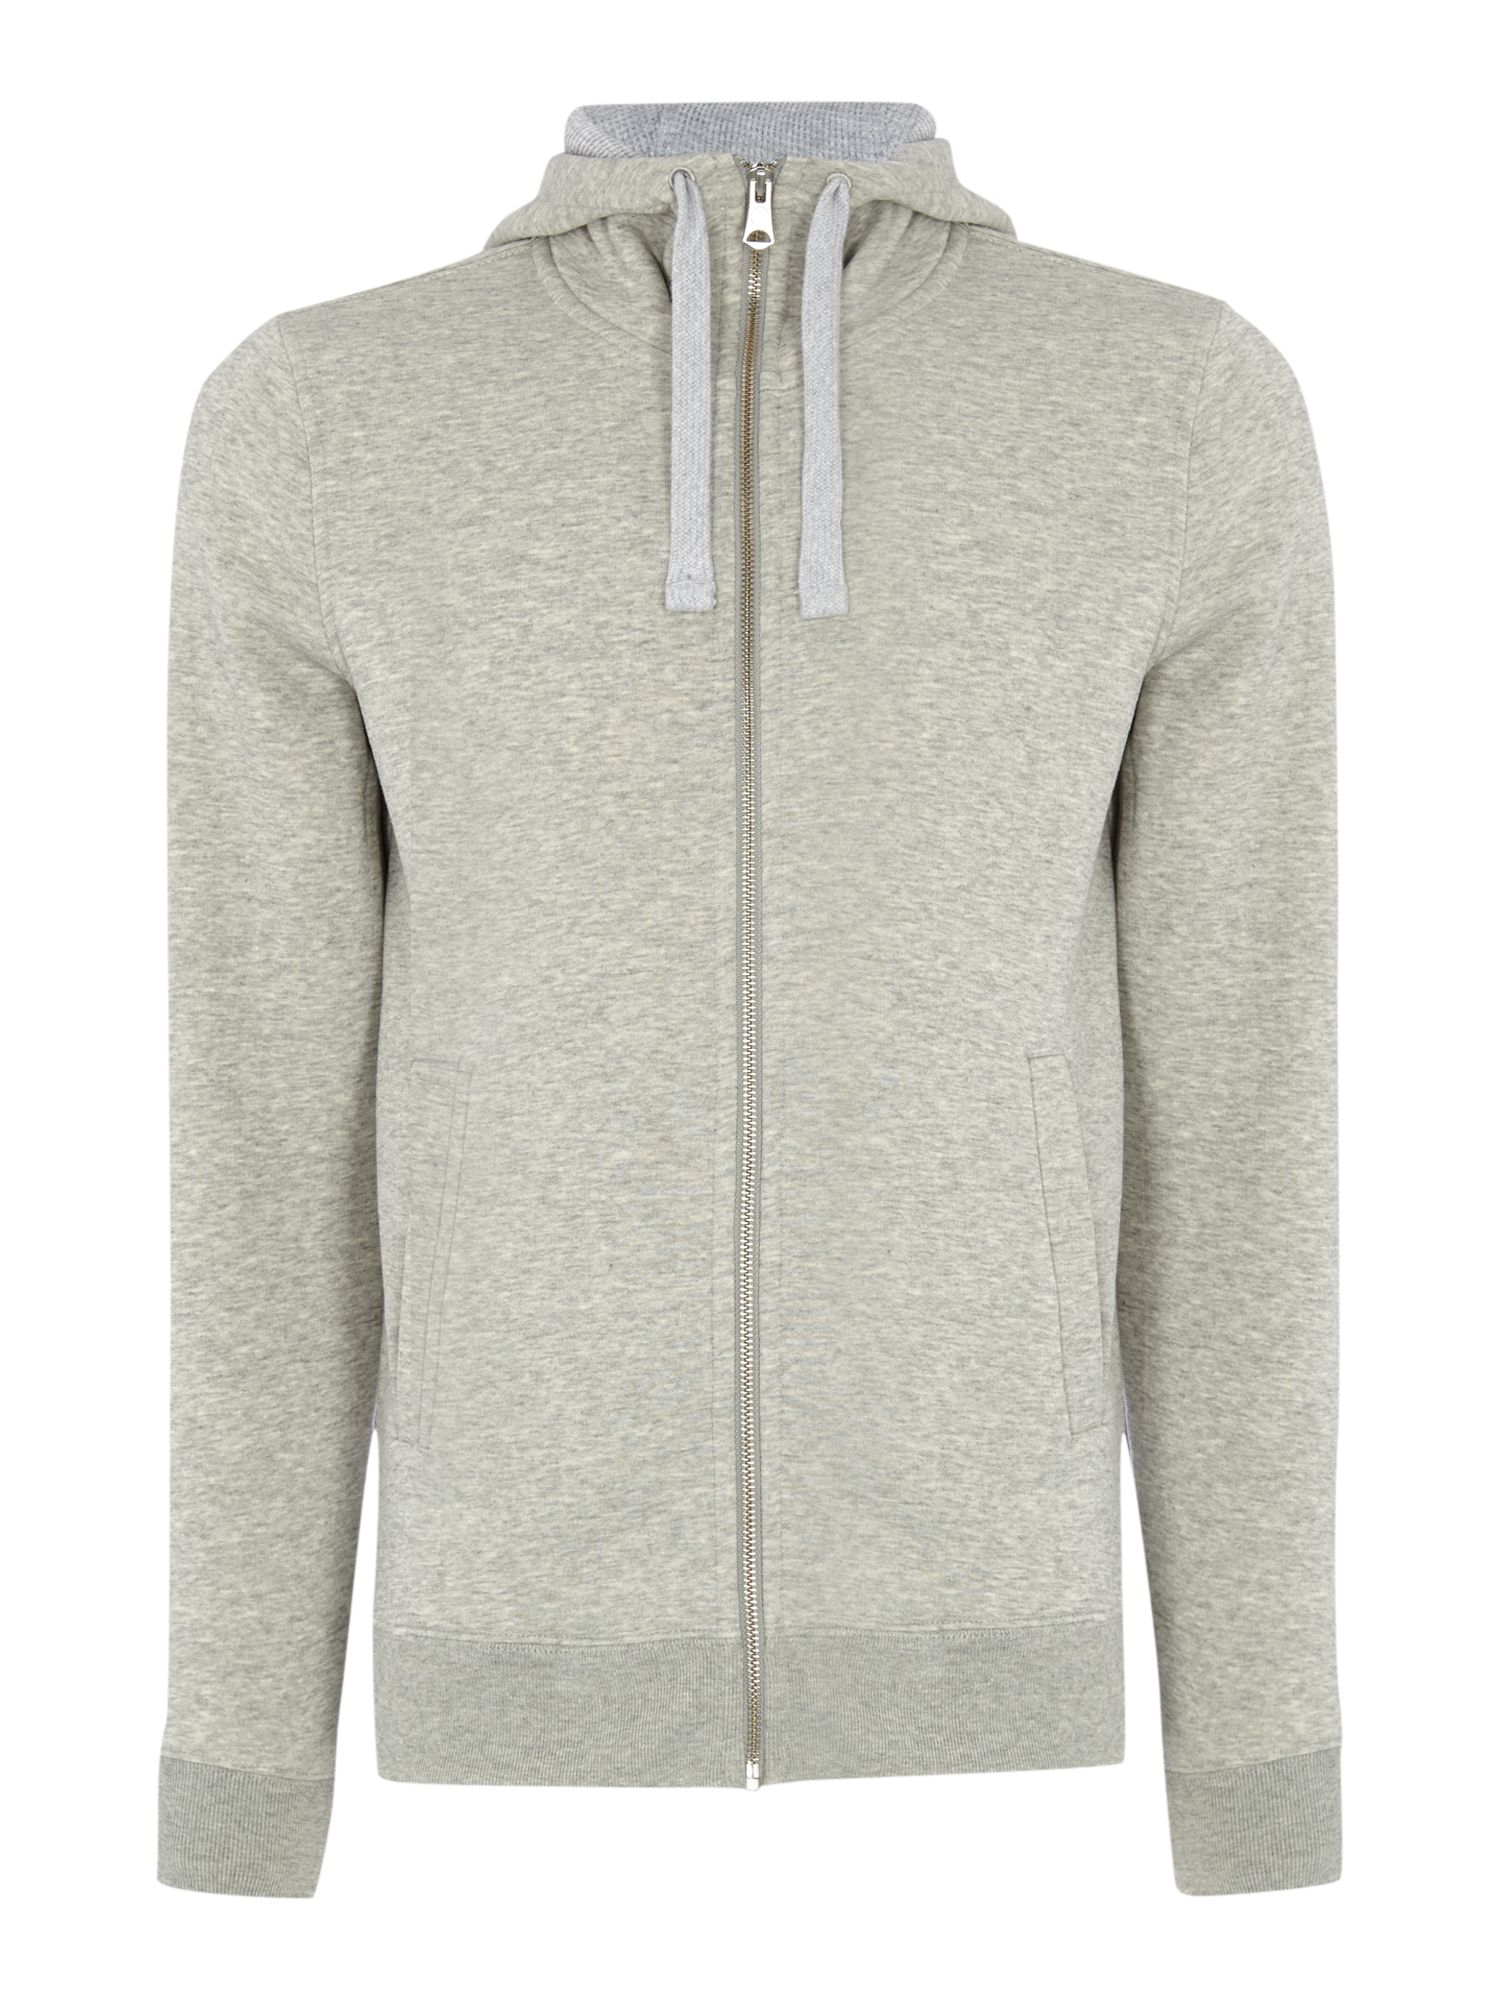 Soft sweat zip up hoody